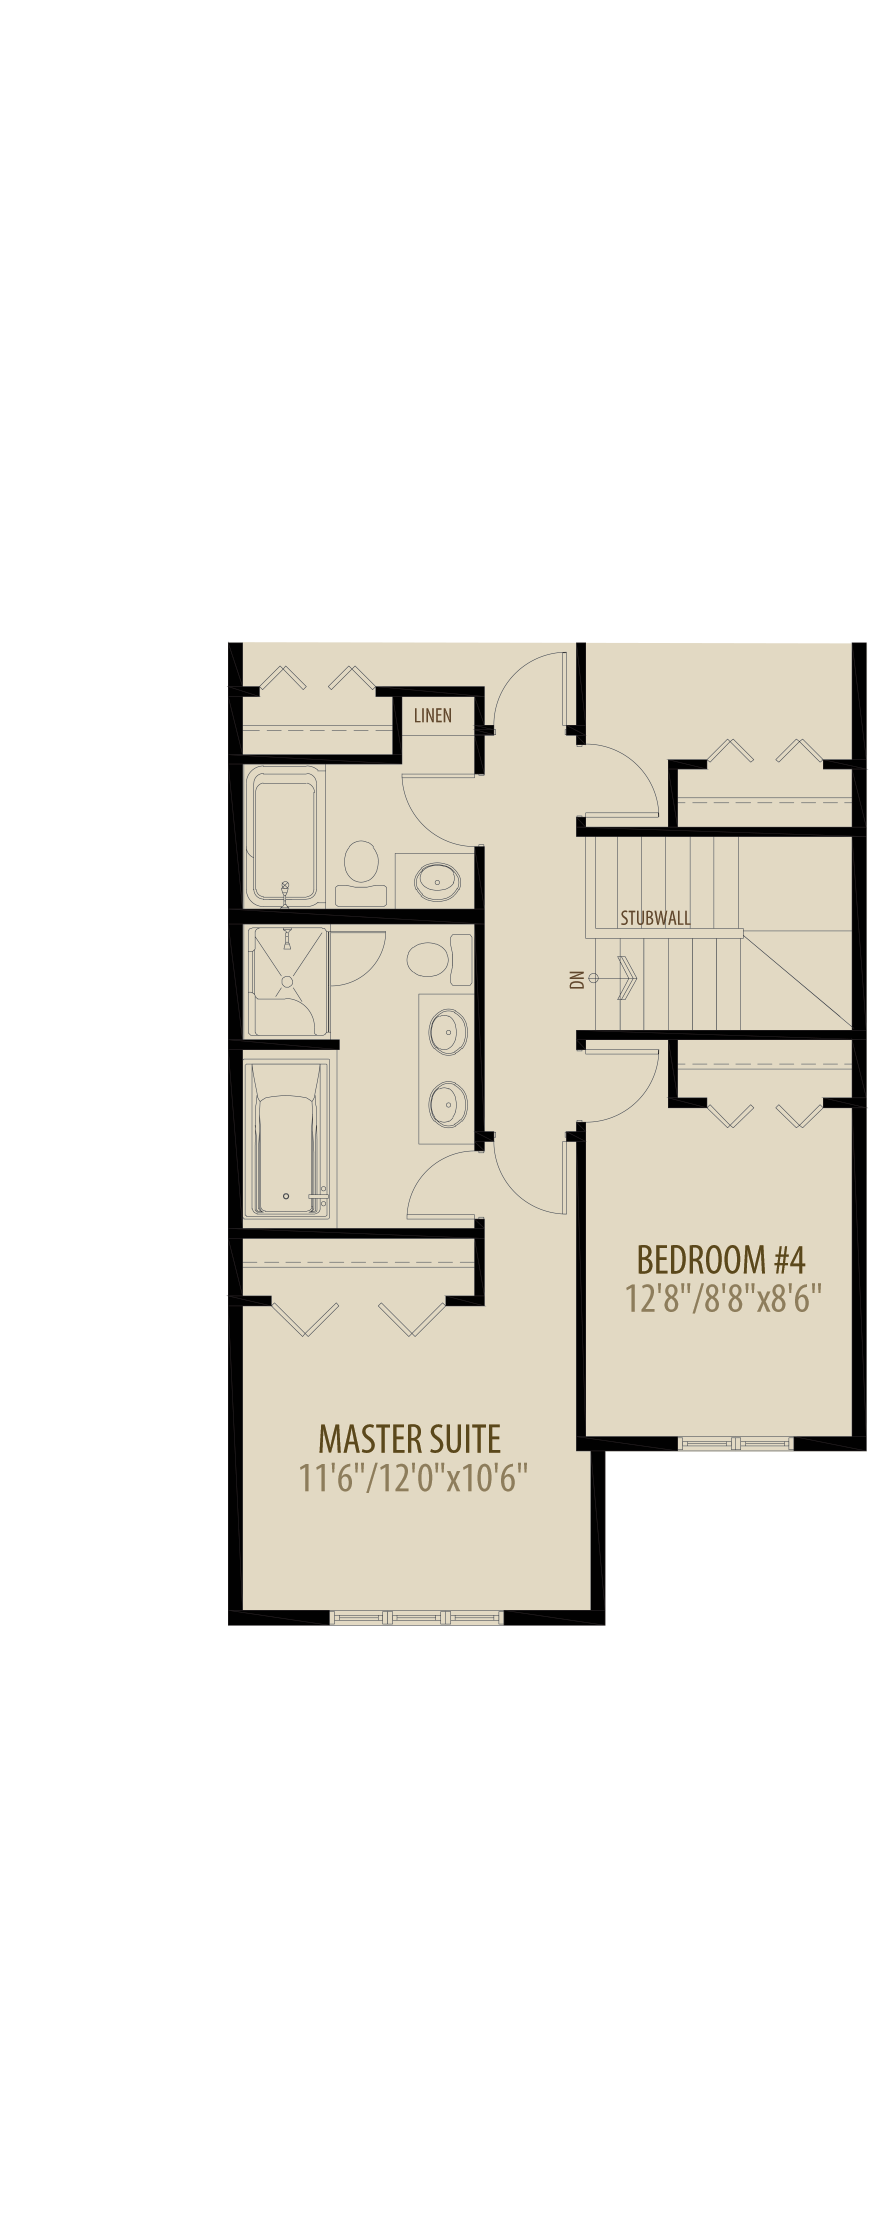 4th Bedroom And Deluxe Ensuite